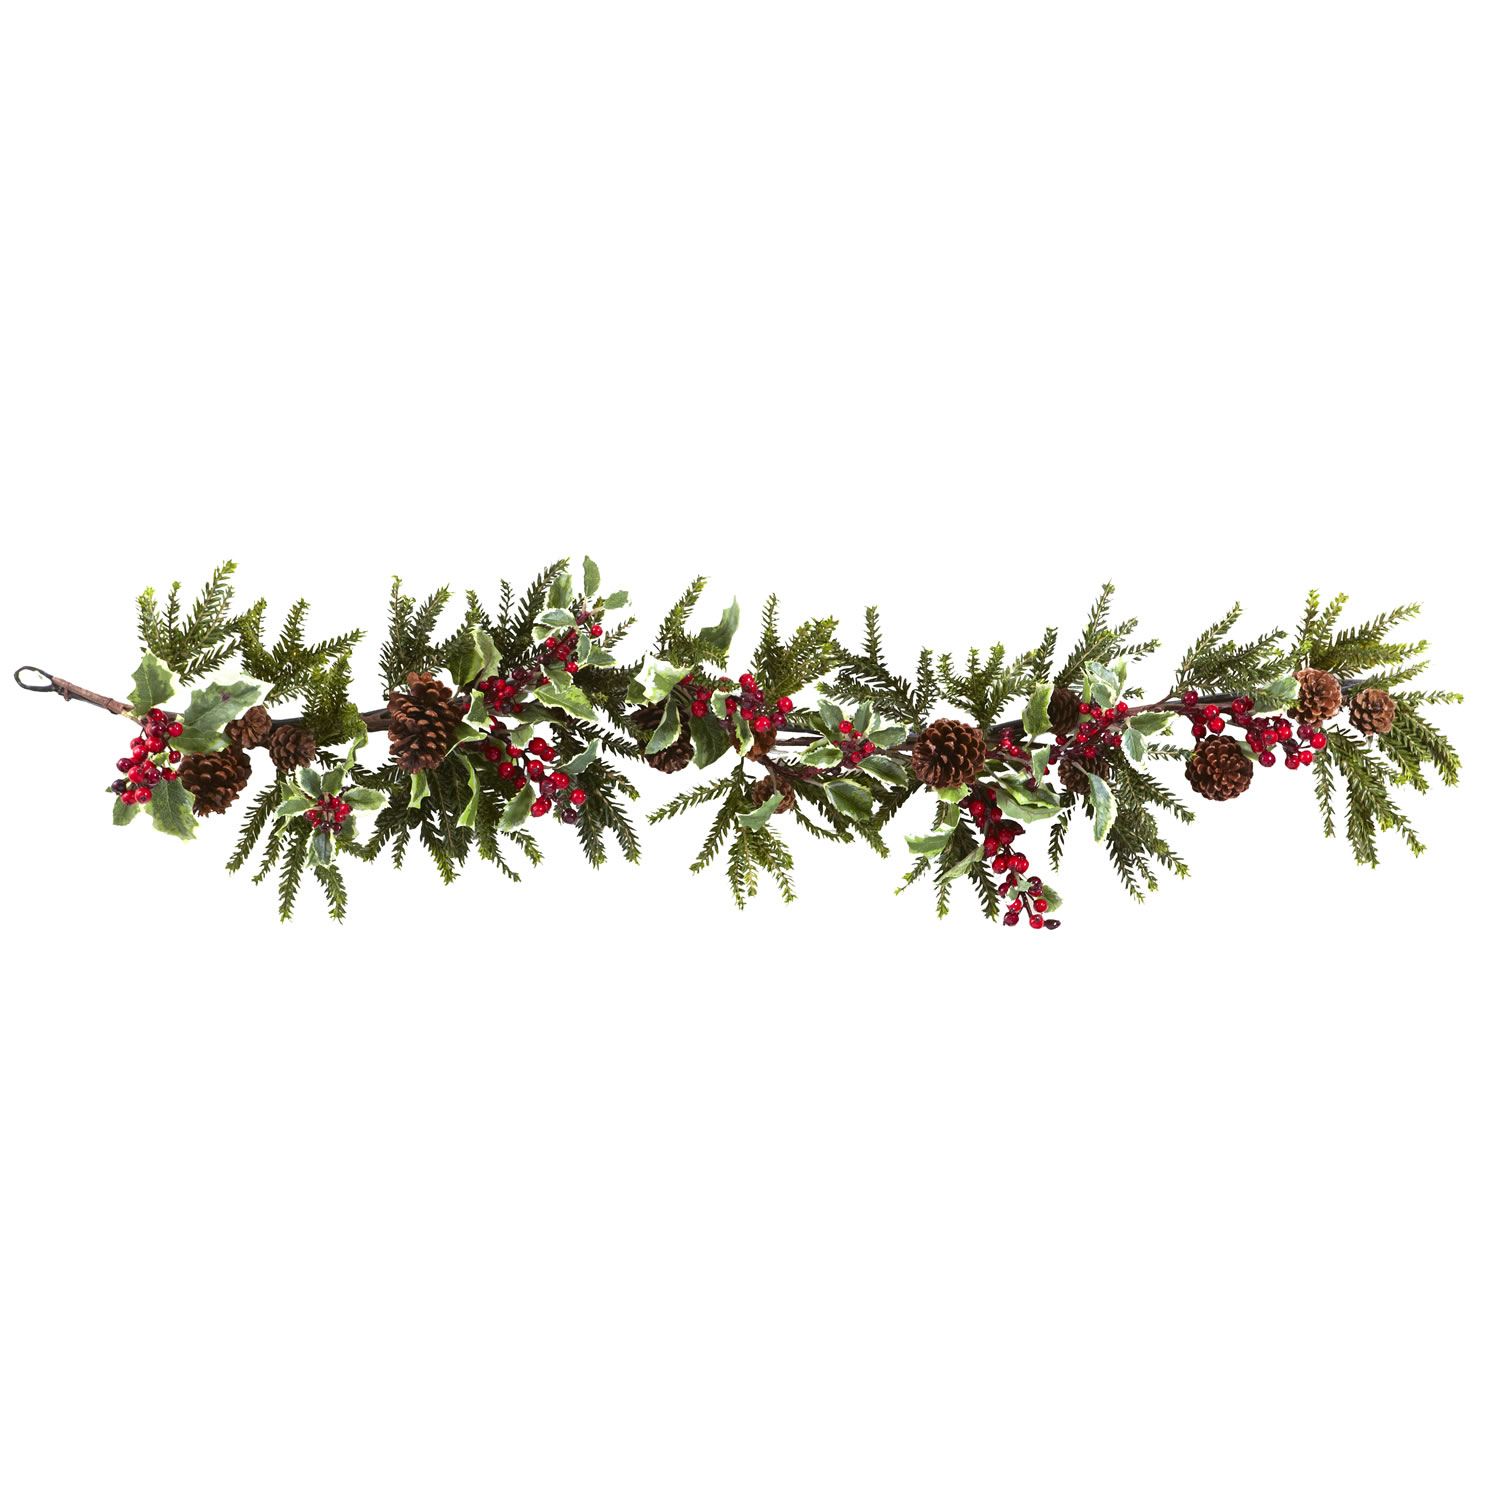 Pine Garland Cliparts.